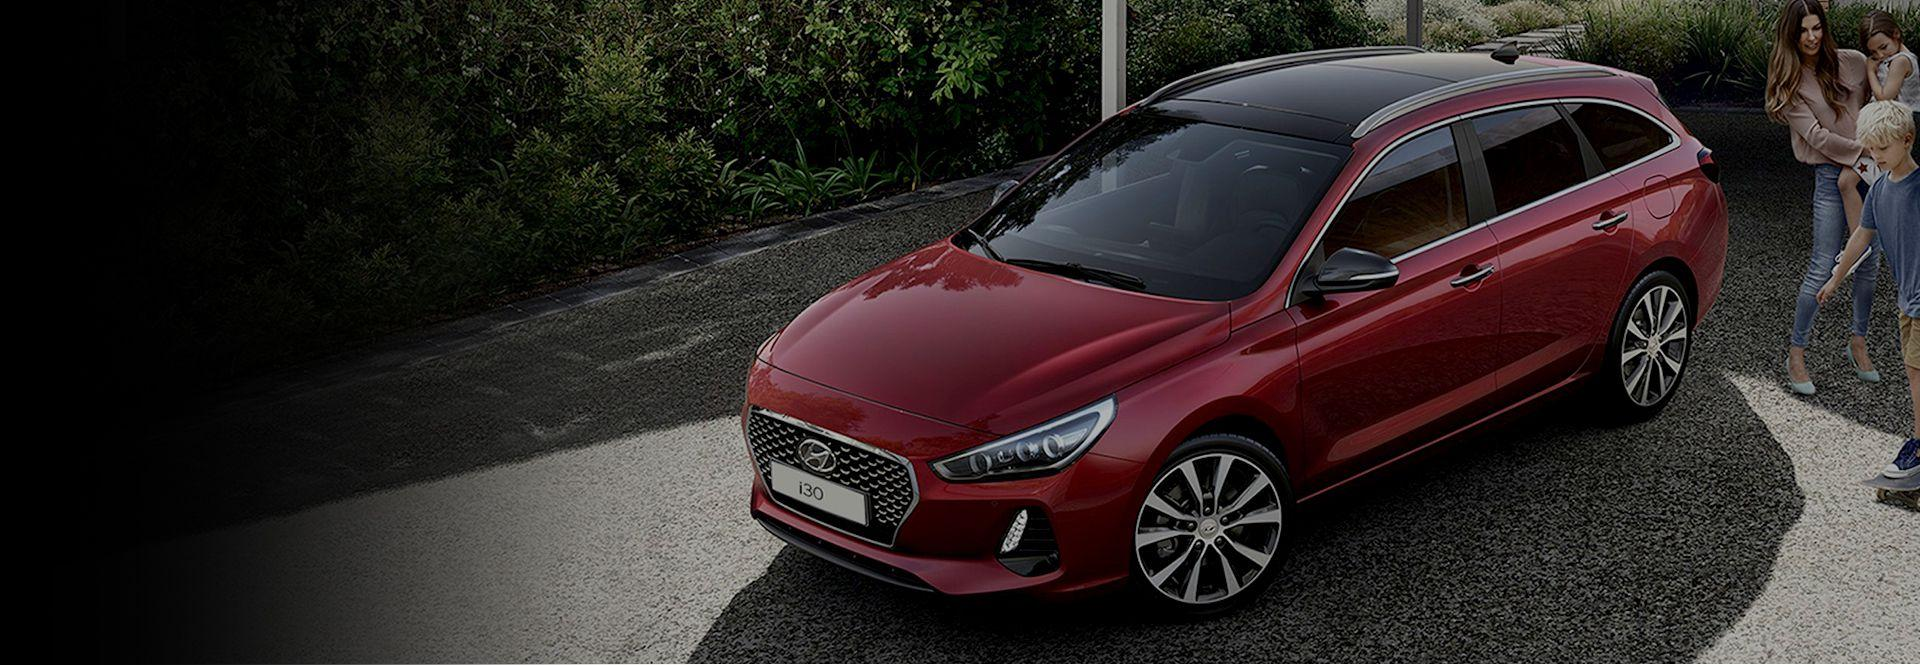 Hyundai 181 Offers